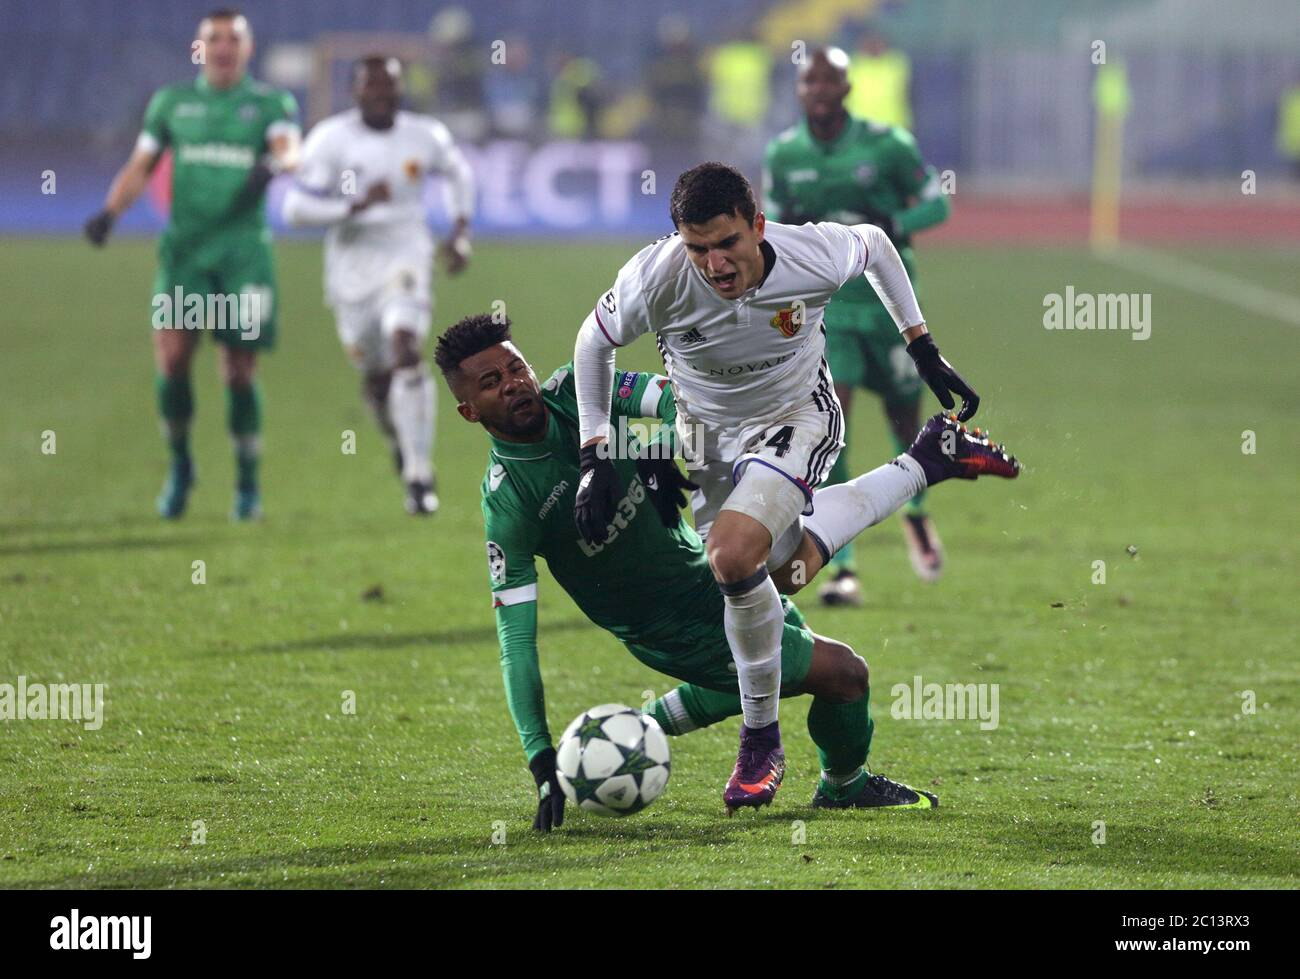 Ludogorets v basel betting preview nfl sports betting in las vegas